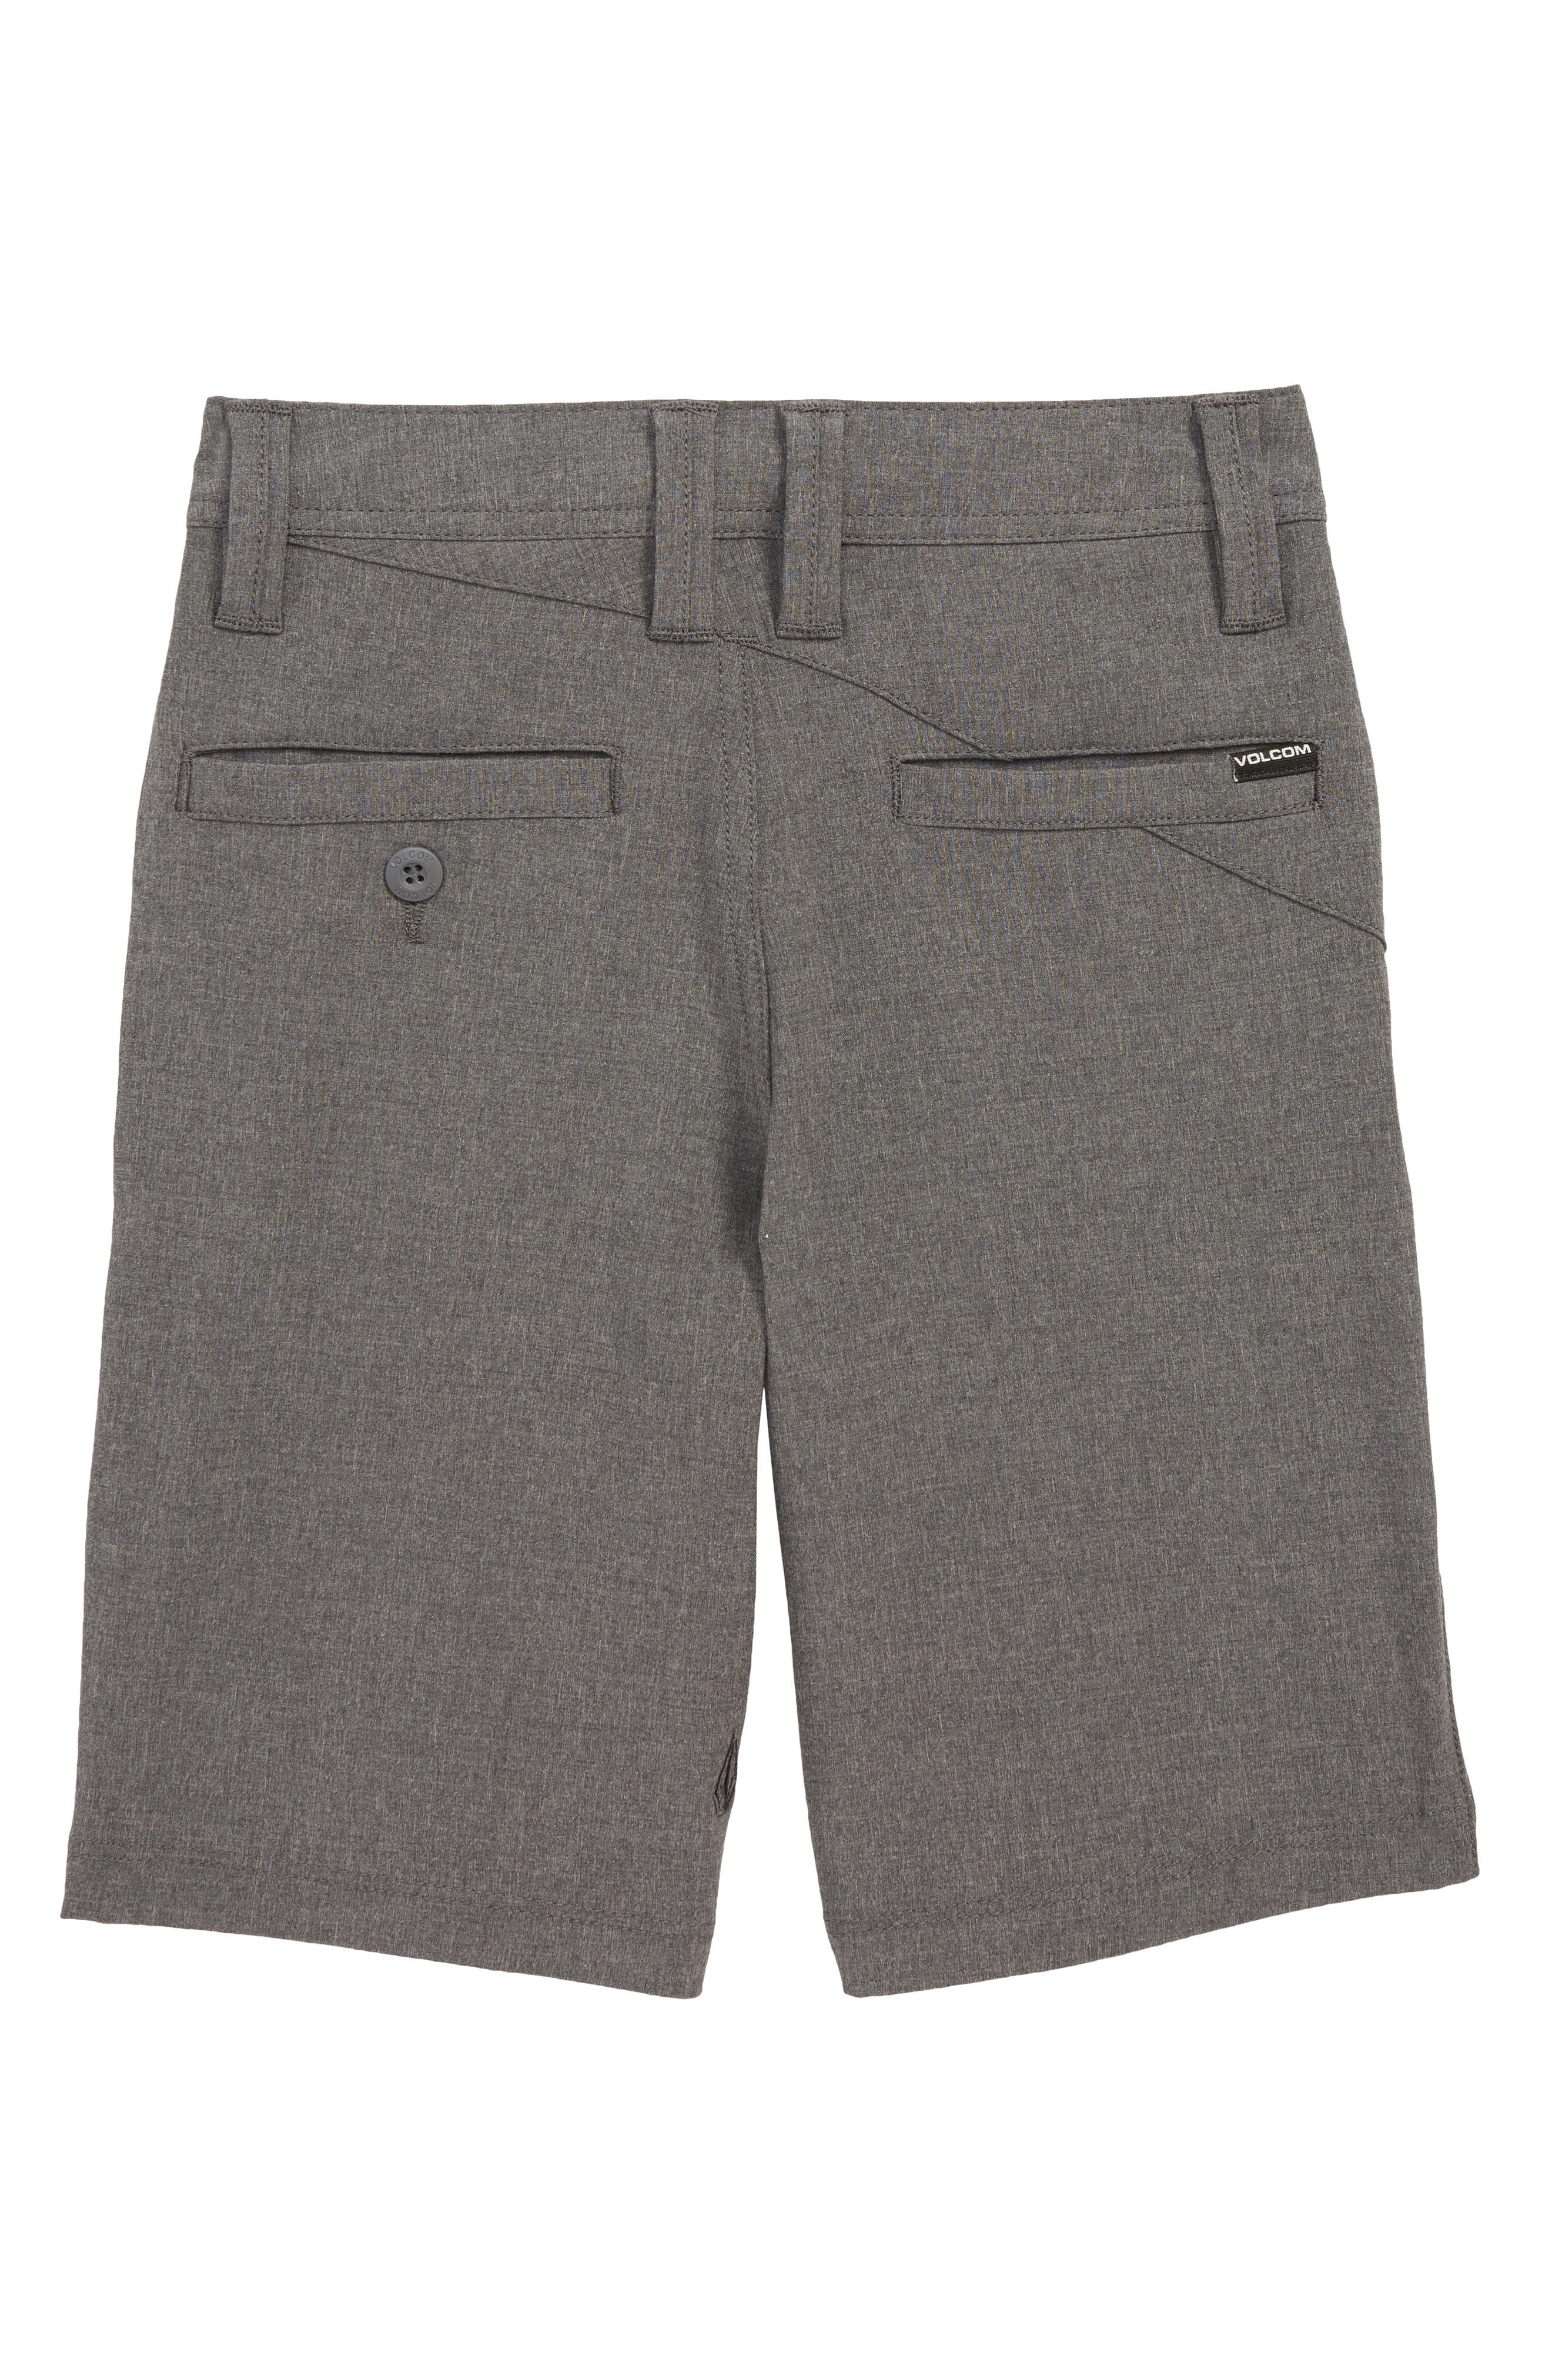 Frickin Surf N' Turf Static Hybrid Board Shorts,                             Alternate thumbnail 2, color,                             CHARCOAL HEATHER